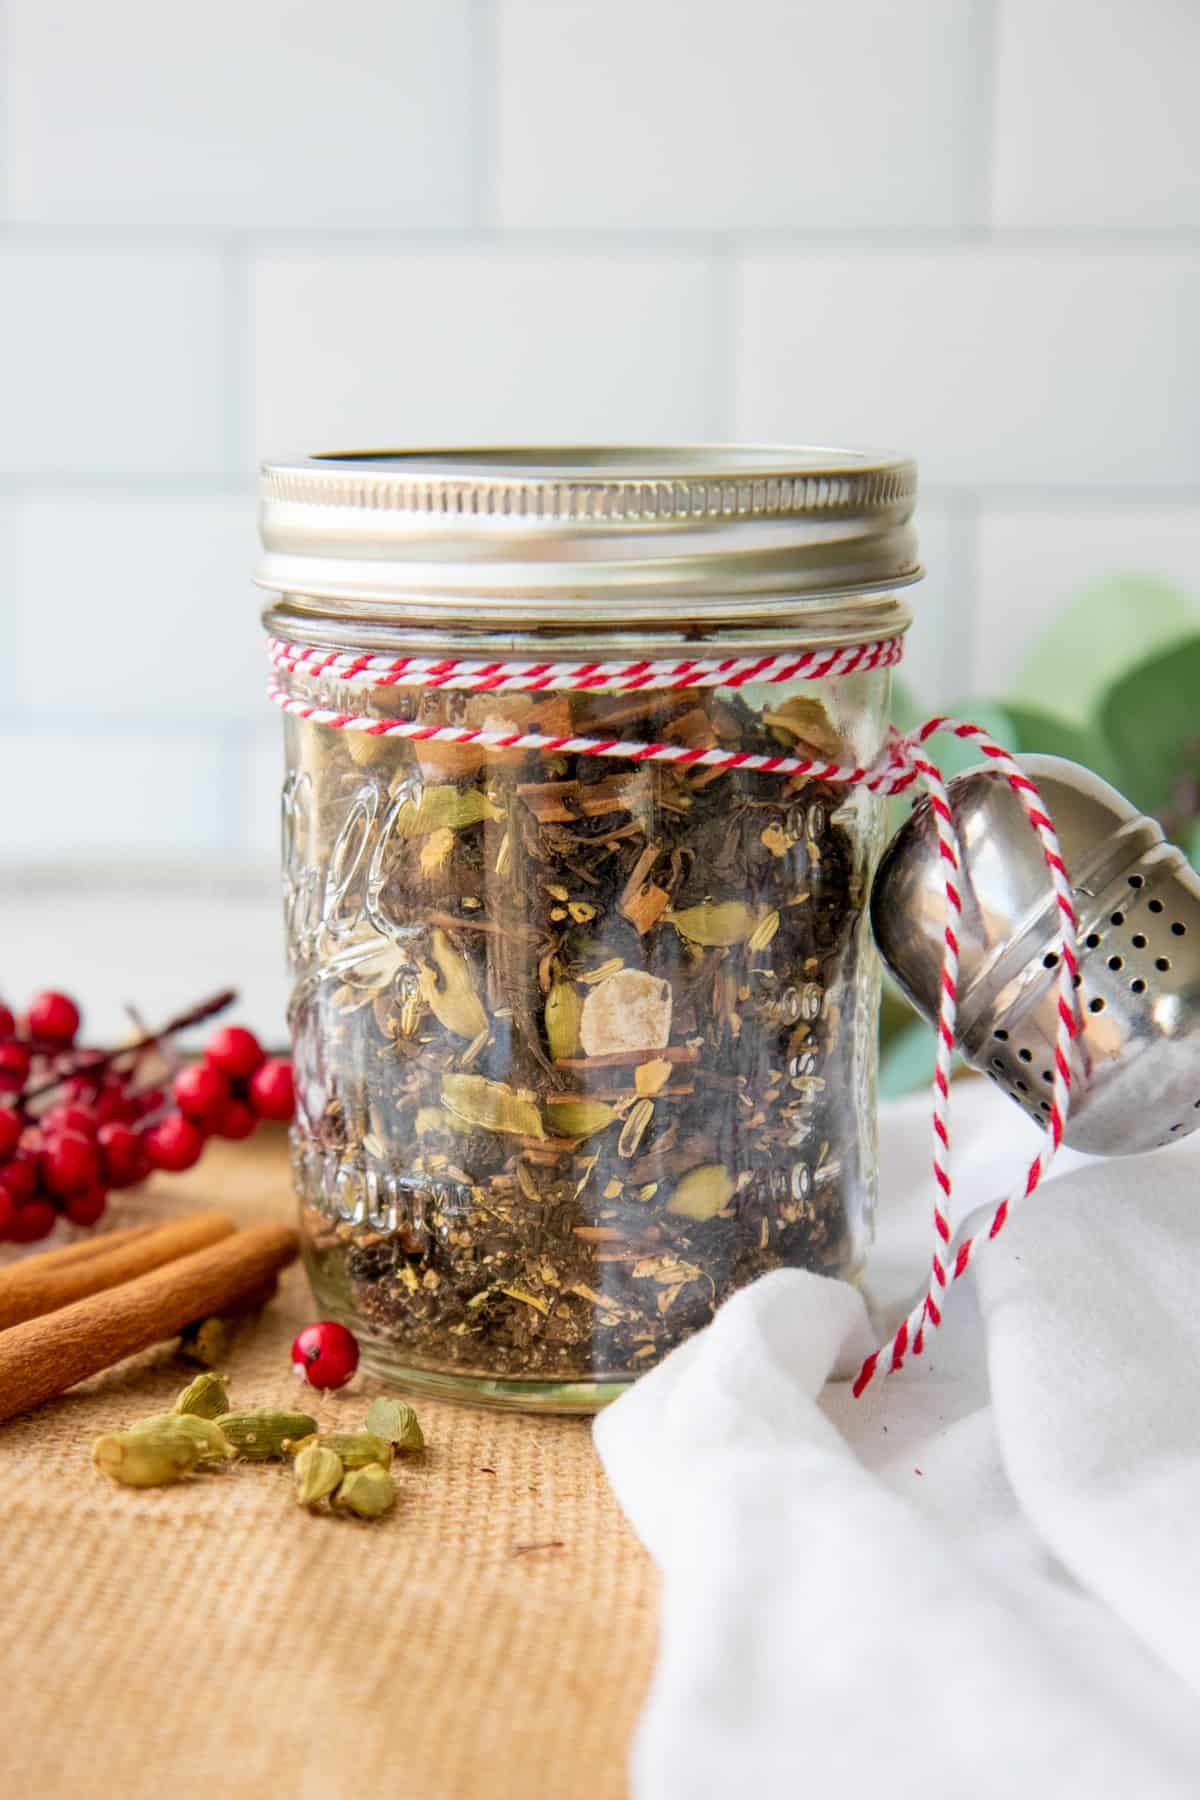 A glass jar filled with loose leaf is tied to a tea ball with baker's twine. The jar is surrounded by spices.